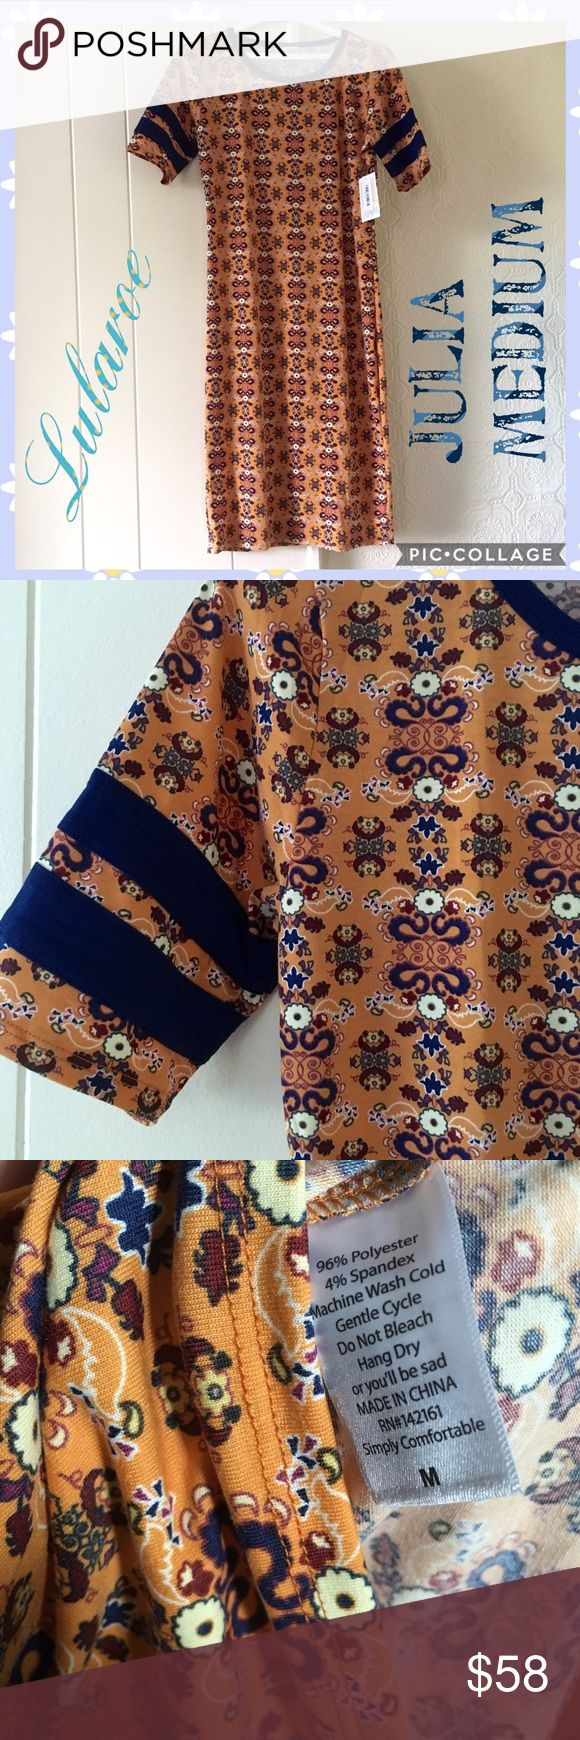 Lularoe Julia Med NWT Detailing is dark blue and yellow orange background! See print details. NWT medium. Julia hugs your body curves. Size up if you want a comfortable loose fit. Im a size 6 and usually wear medium in Julia. Pet and smoke free home. Pls check at my listing for unicorns. Thanks LuLaRoe Dresses